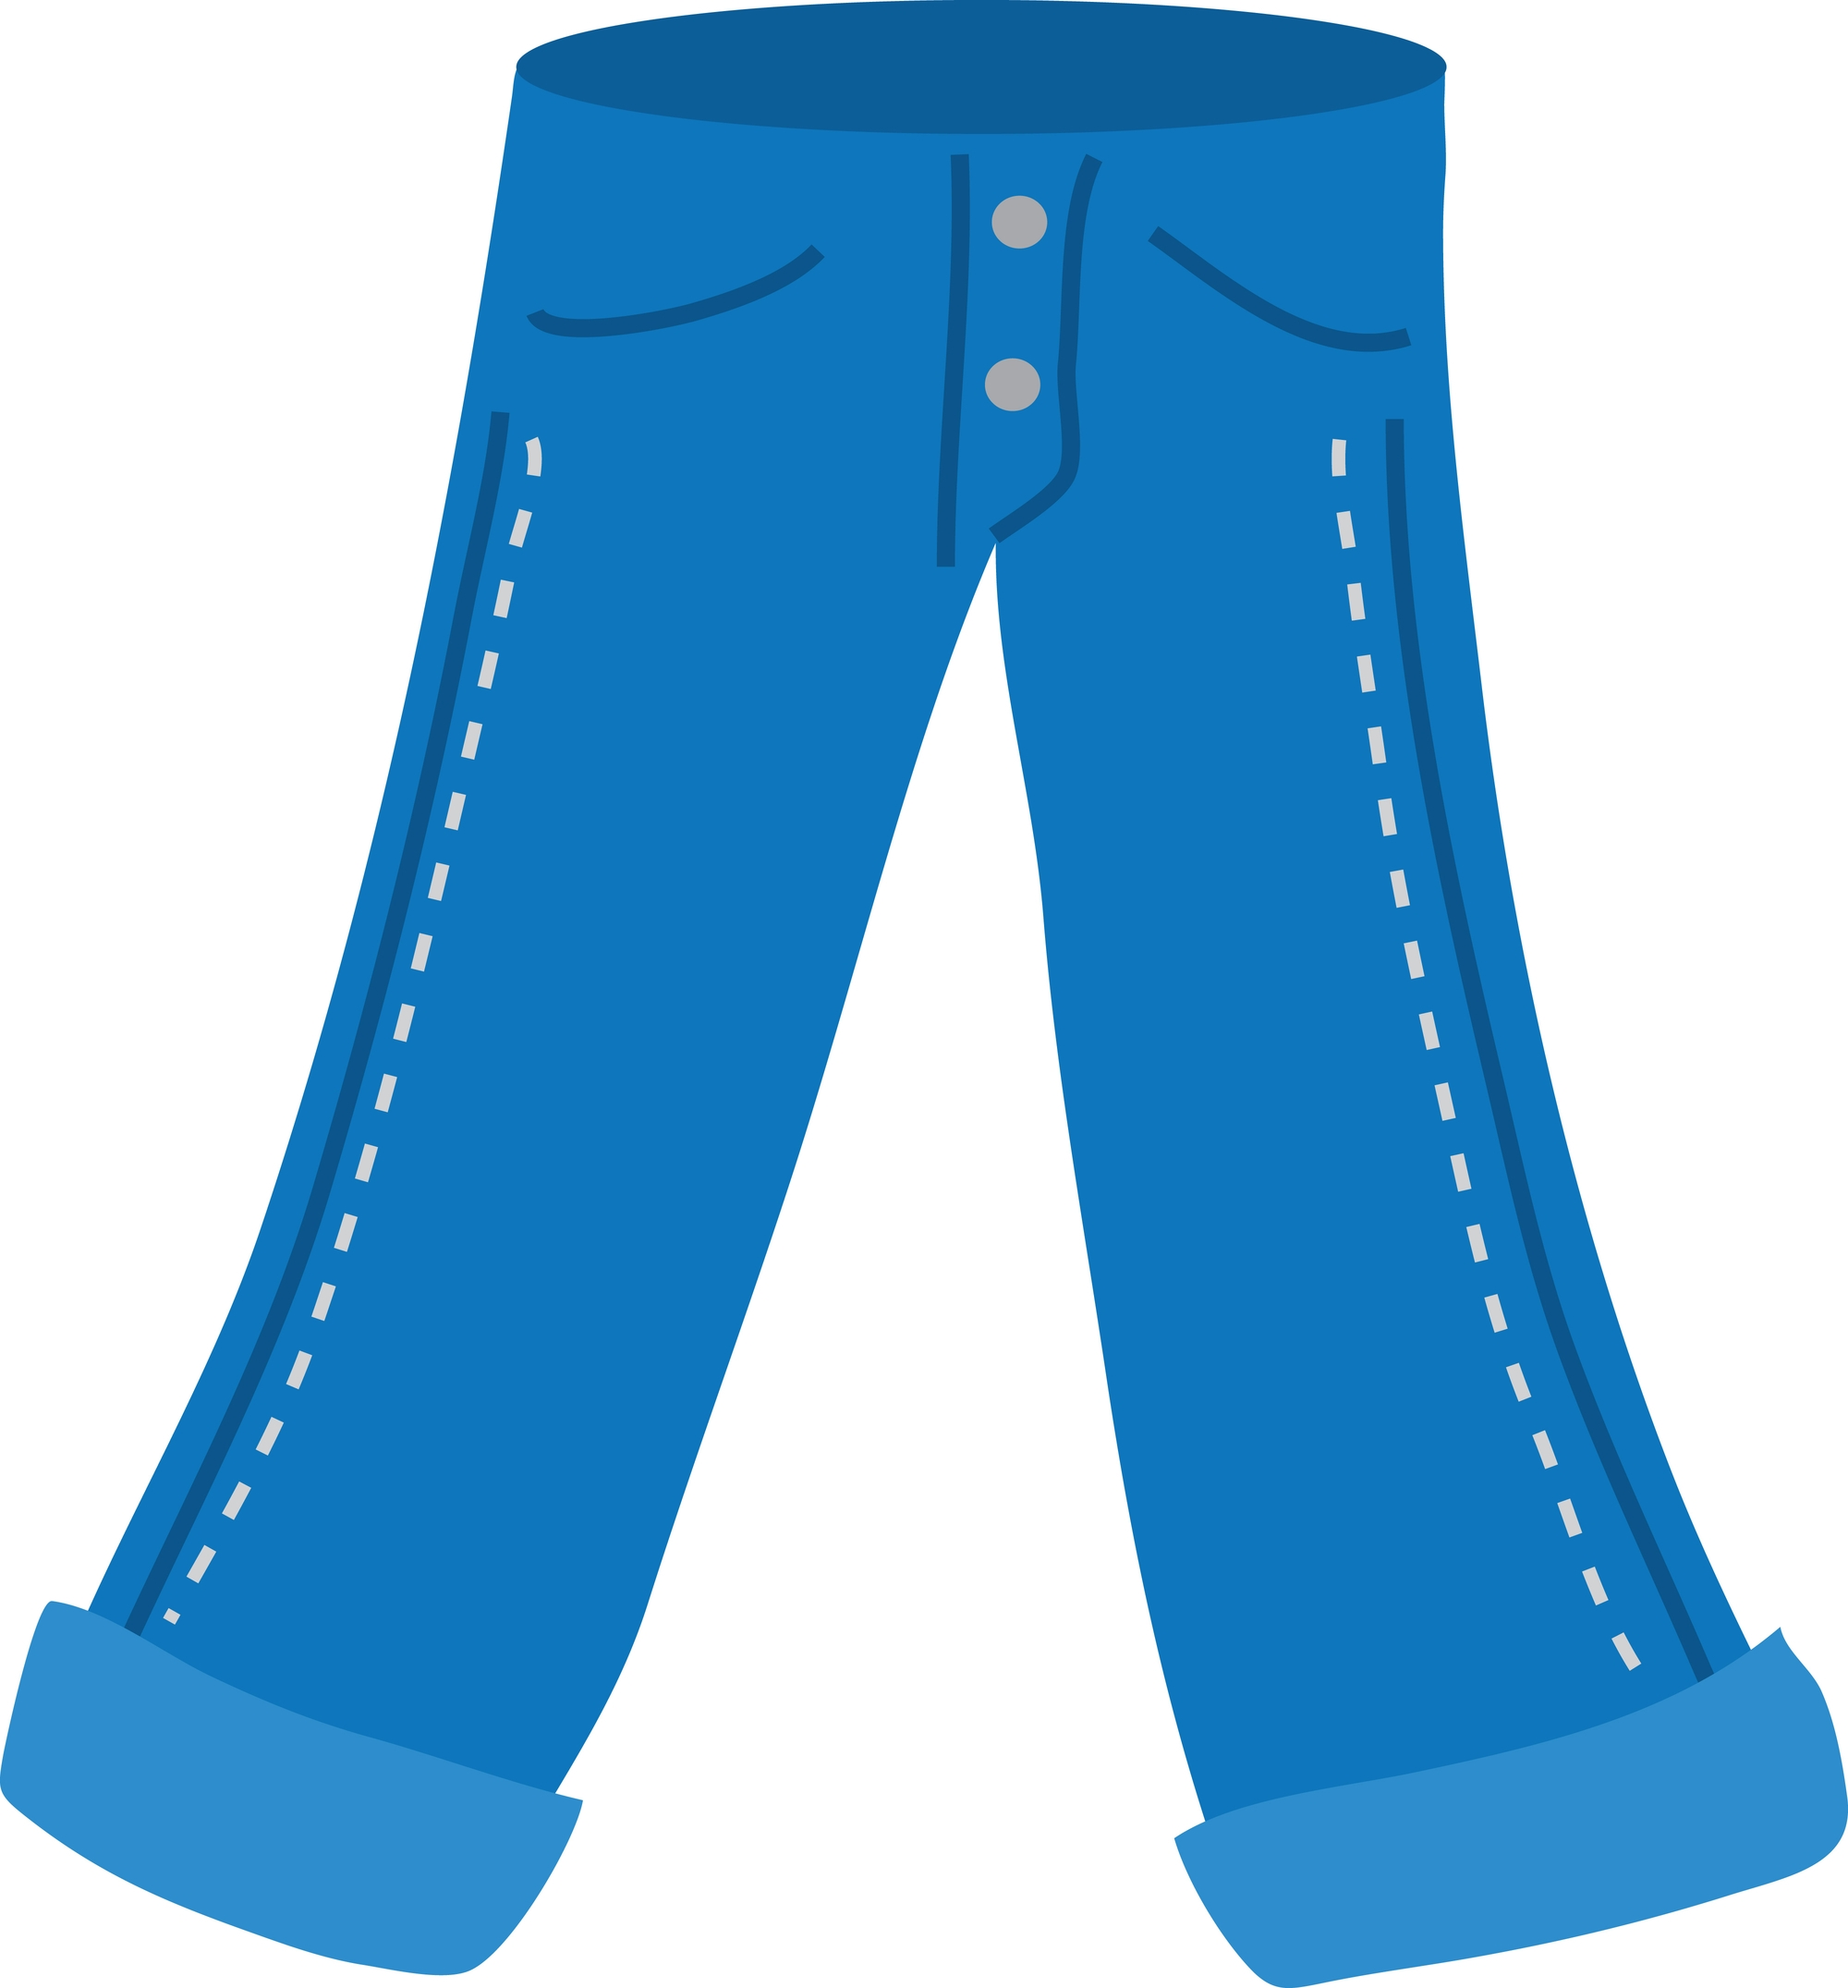 New gallery digital collection. Clipart pants color